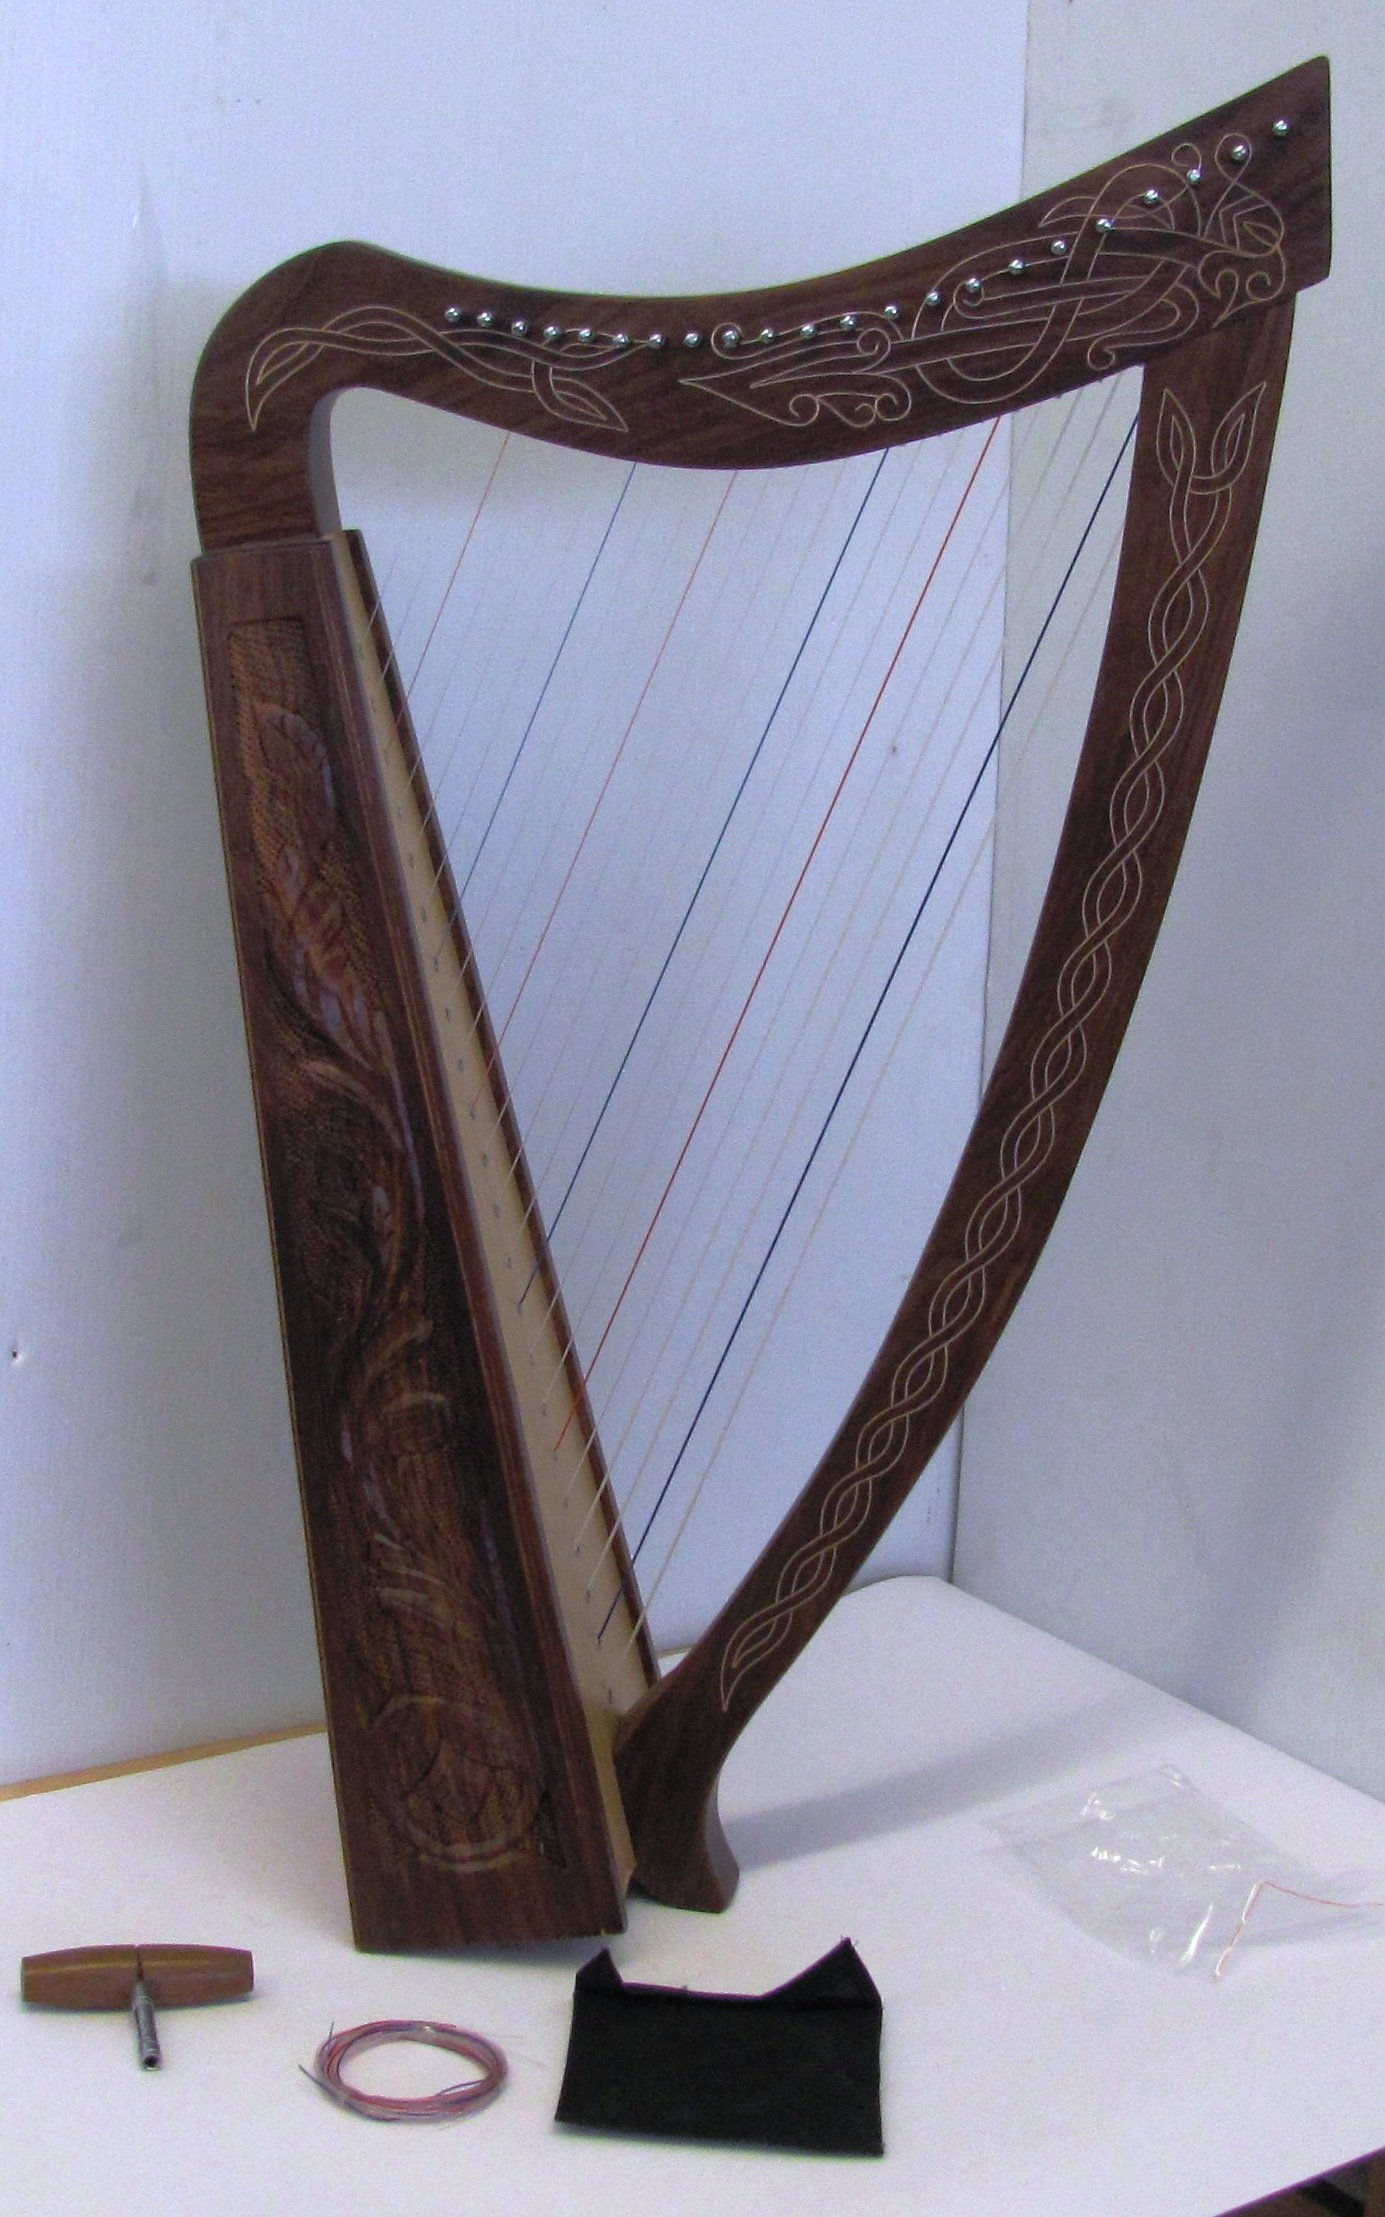 36 INCH 22 String Harp Celtic Irish Style Solid wood free Carrying Bag strings and Tuner by Sturgis